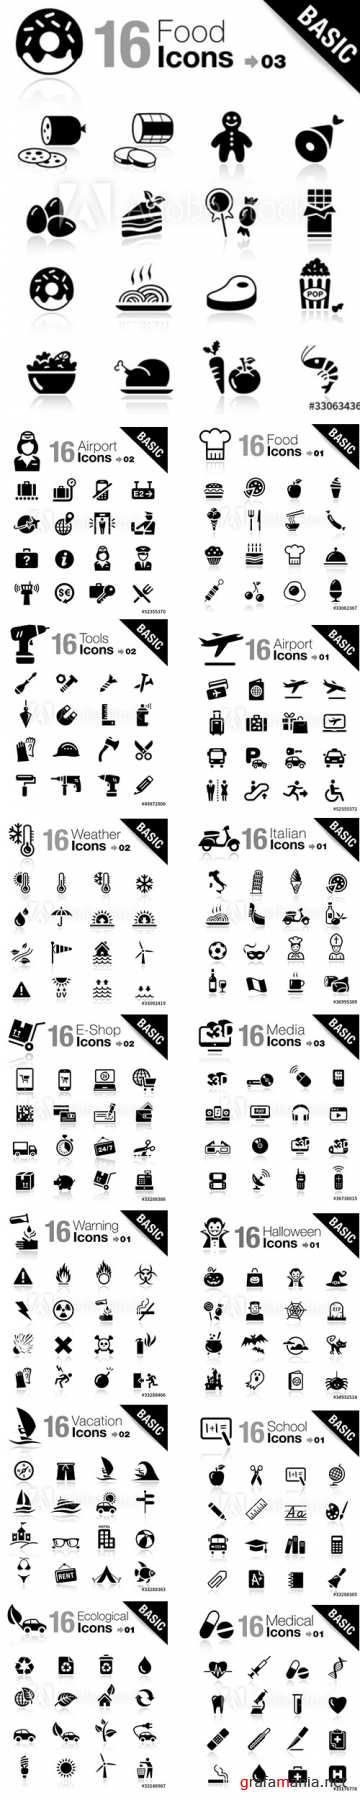 Basic Icons Pack Vol3